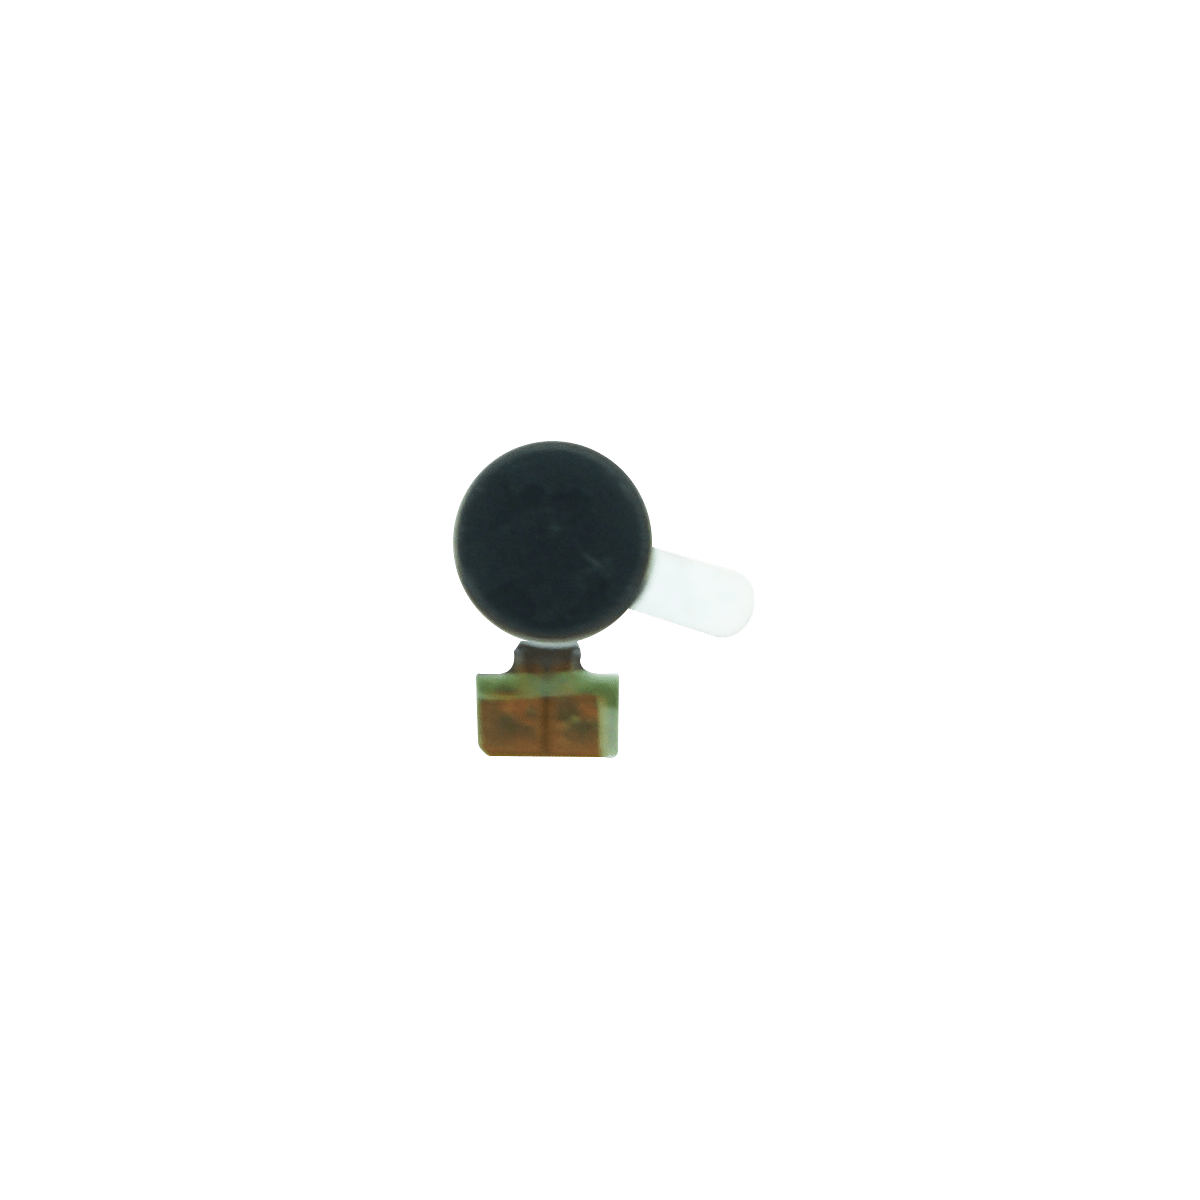 Samsung Galaxy S6 Vibrate Motor Replacement